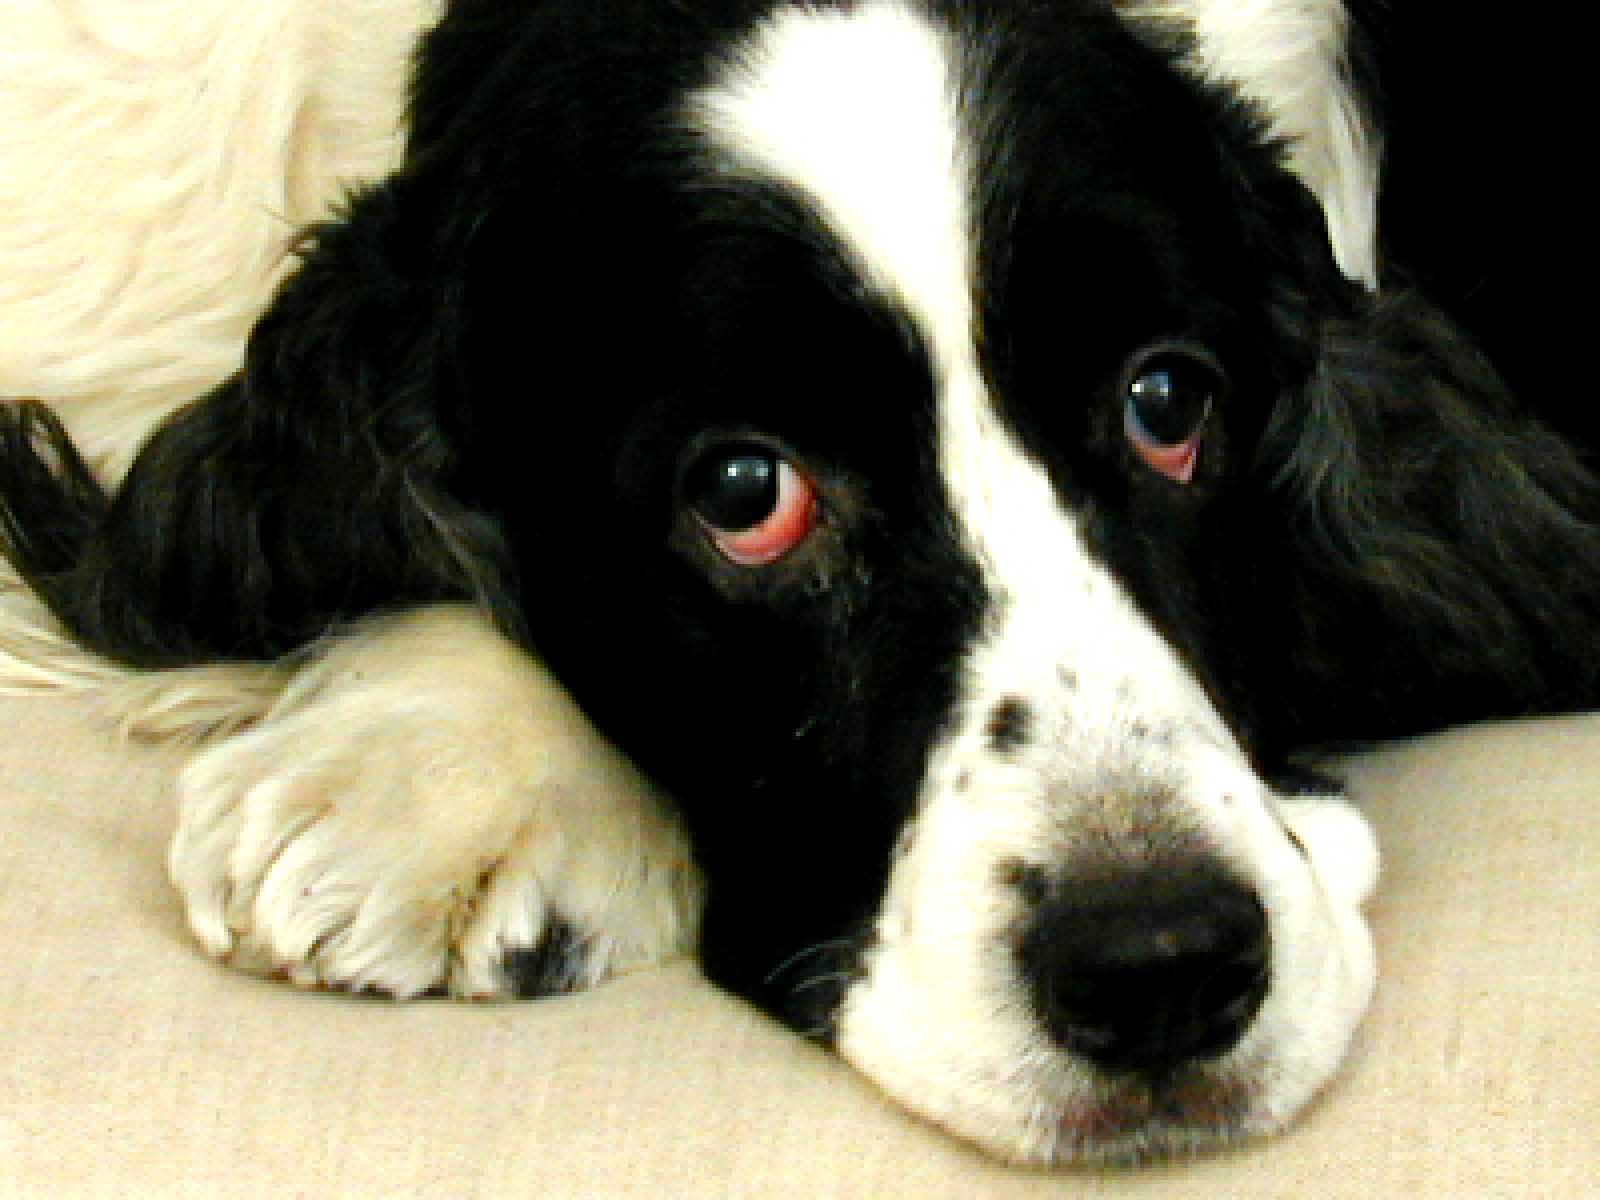 Saint Toby, English Springer Spaniel rescued dog, using the internet